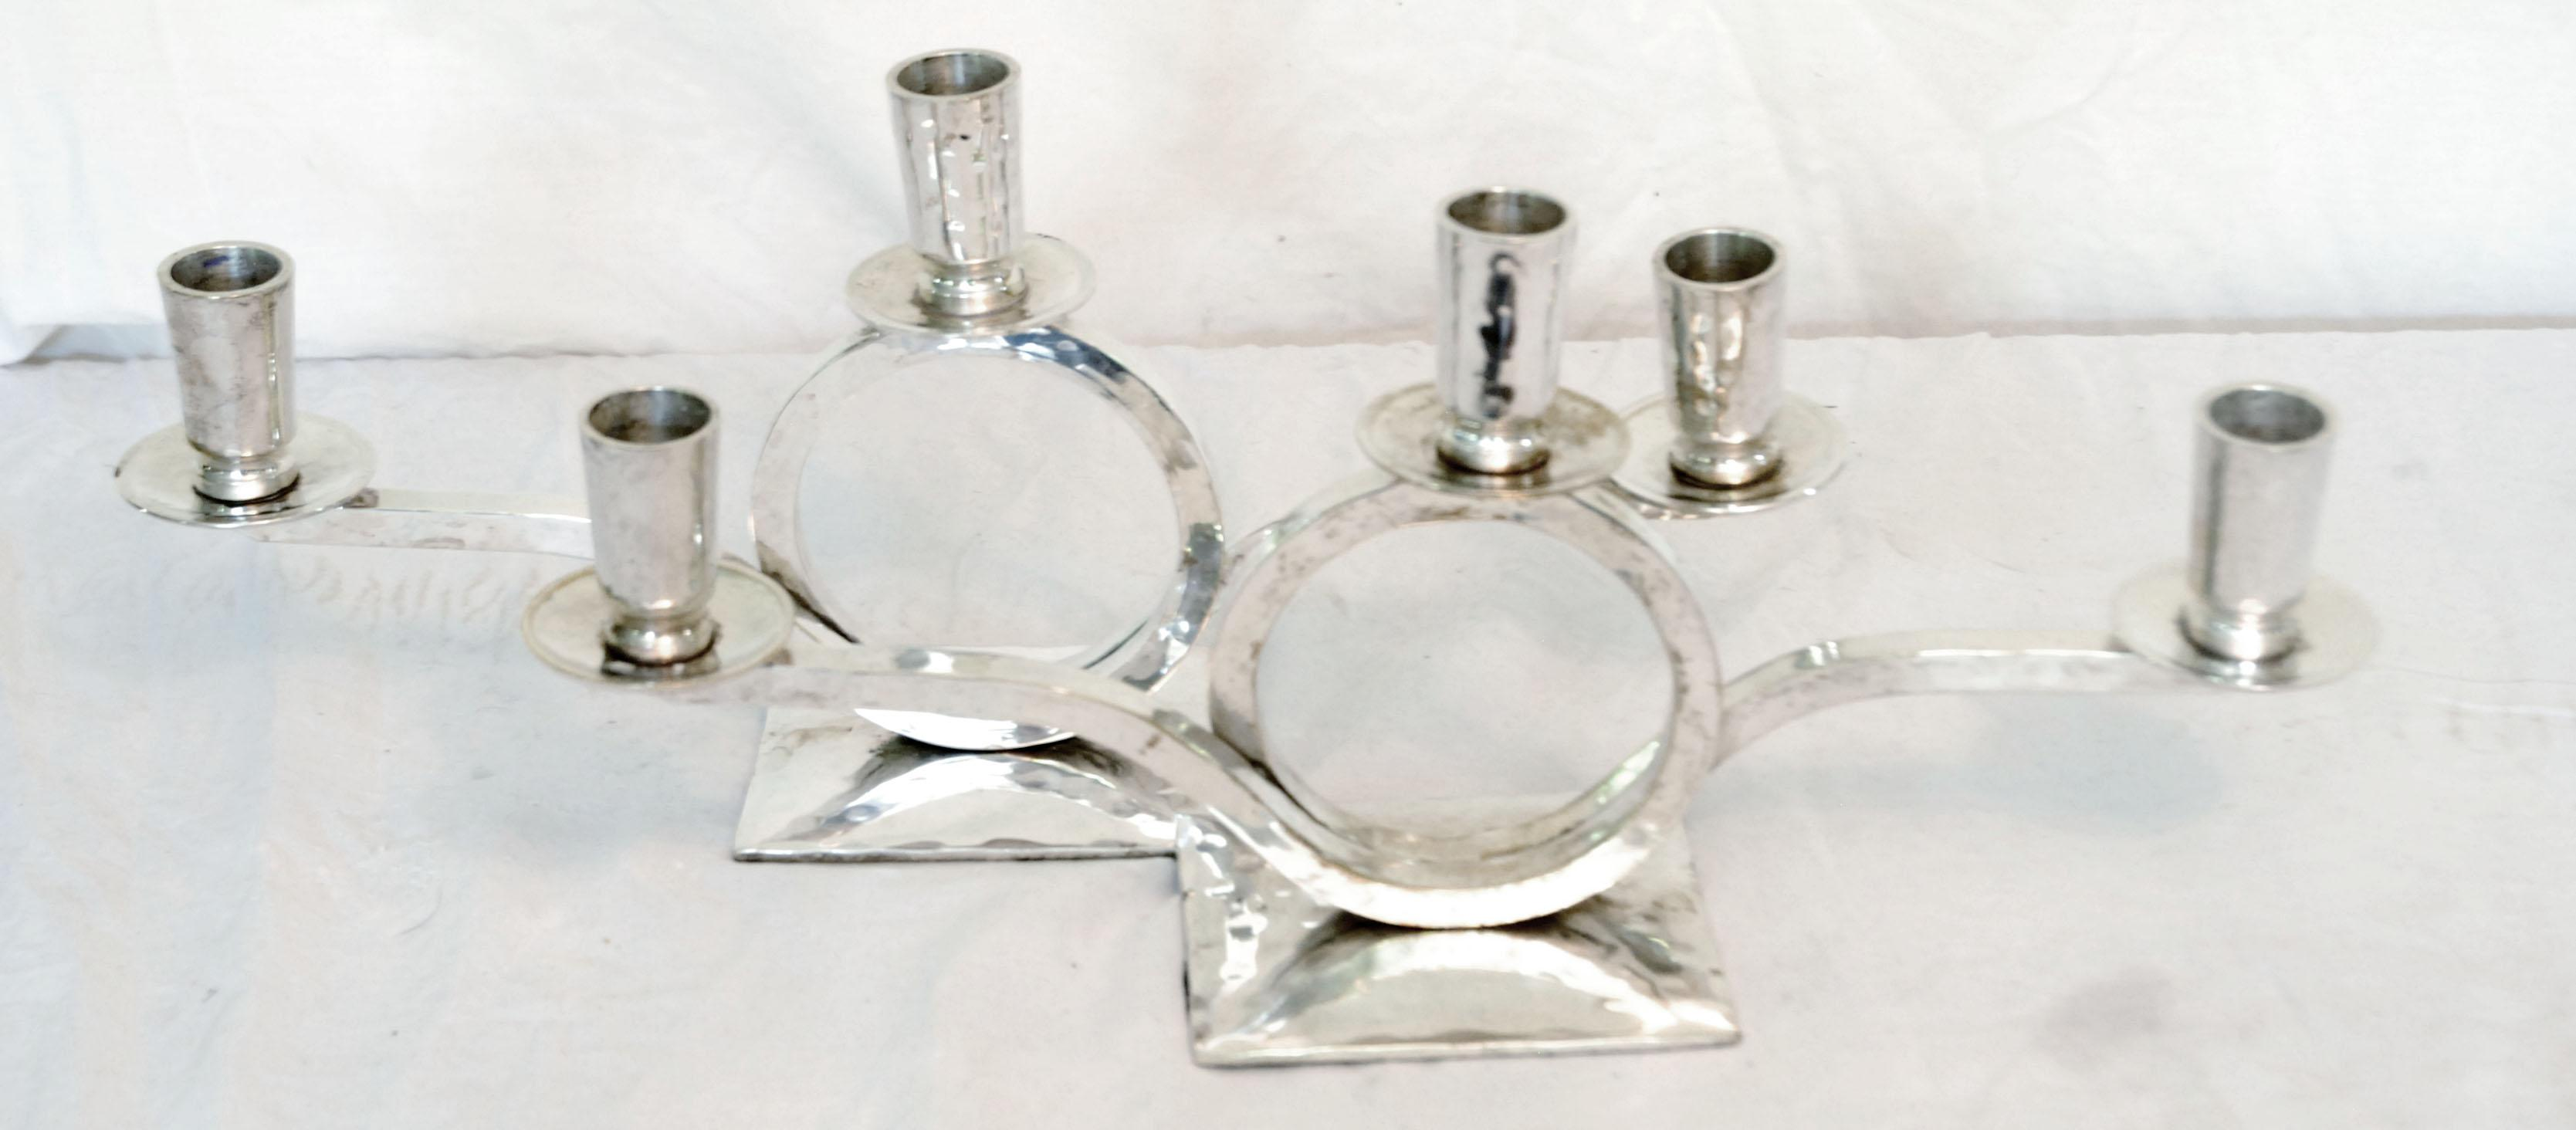 Restoration Hardware Silver Plate Candle Holders - A Pair - Image 2 of 4  sc 1 st  Chairish & Restoration Hardware Silver Plate Candle Holders - A Pair | Chairish